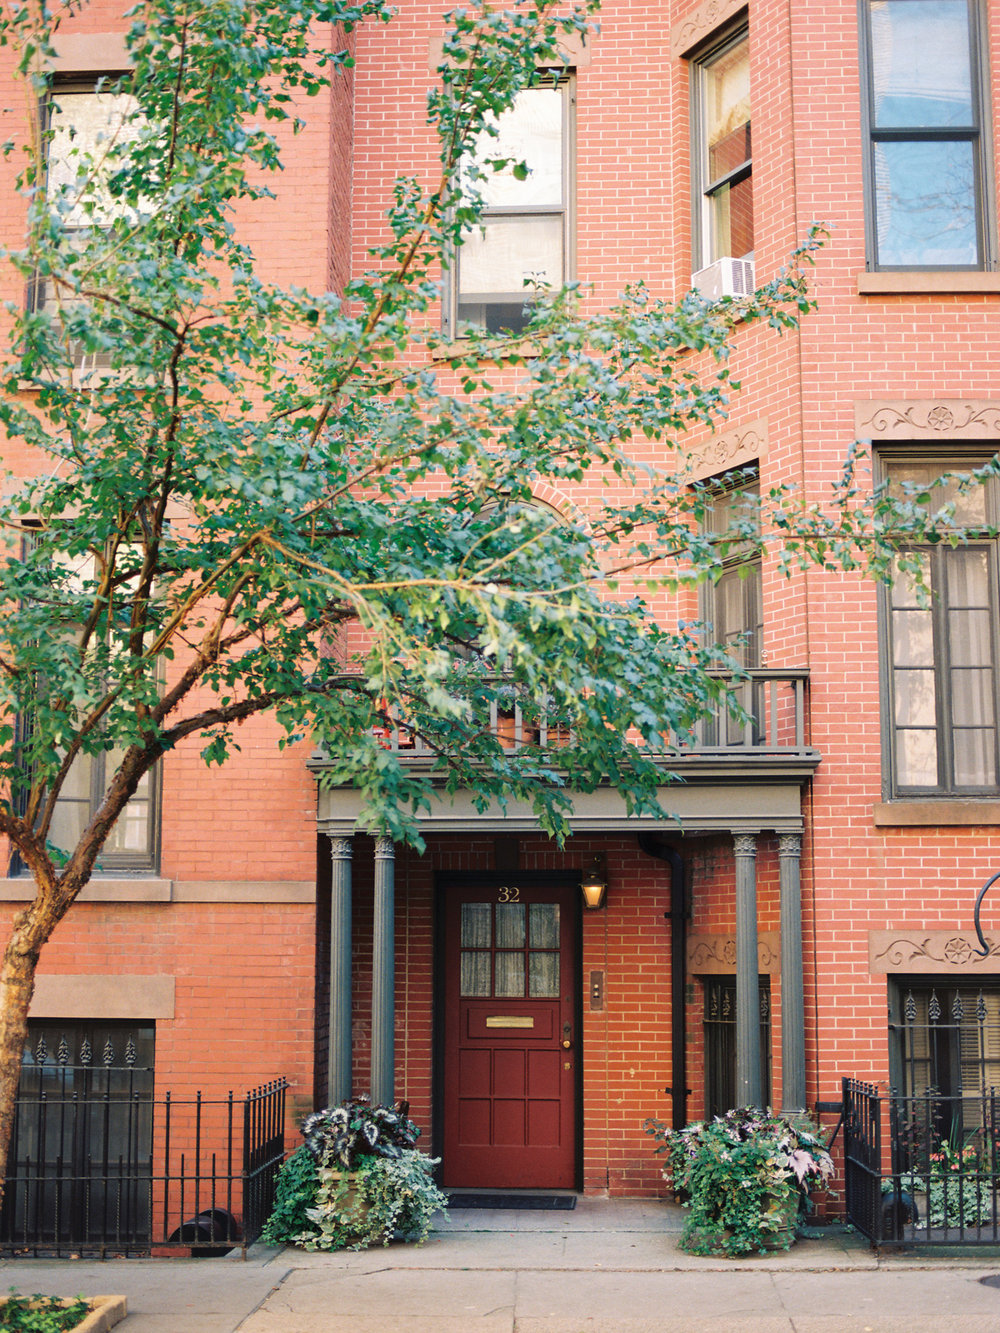 brooklyn-heights-house.jpg